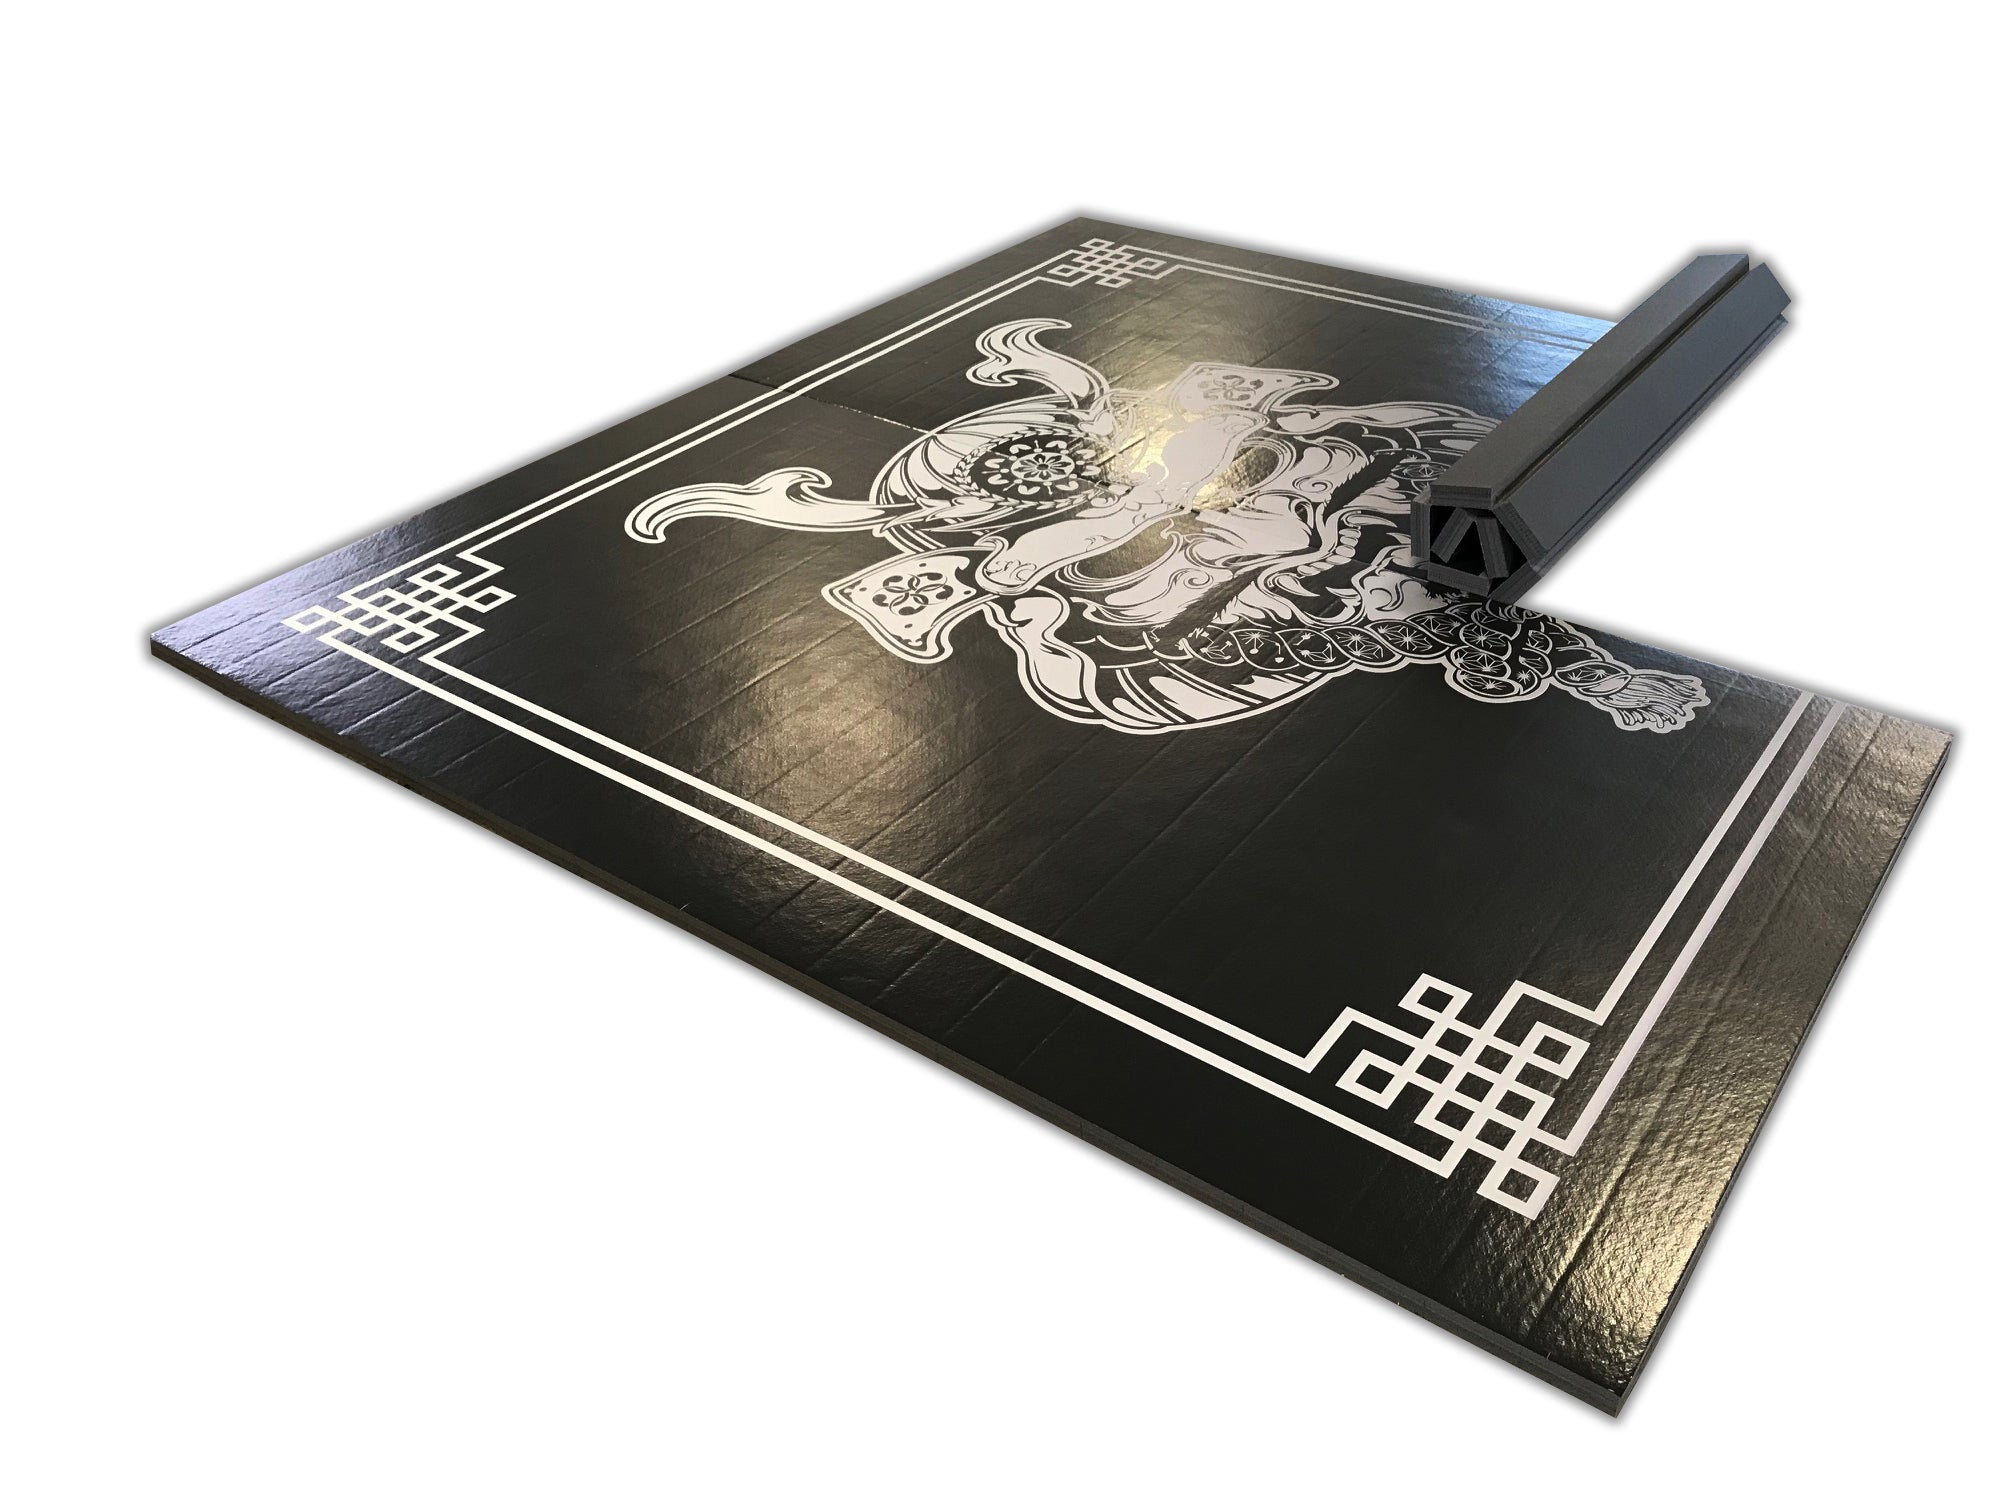 "Samurai Digitally Printed 8' x 8' x 1 3/8"" Roll-Up MMA Grappling Mat"